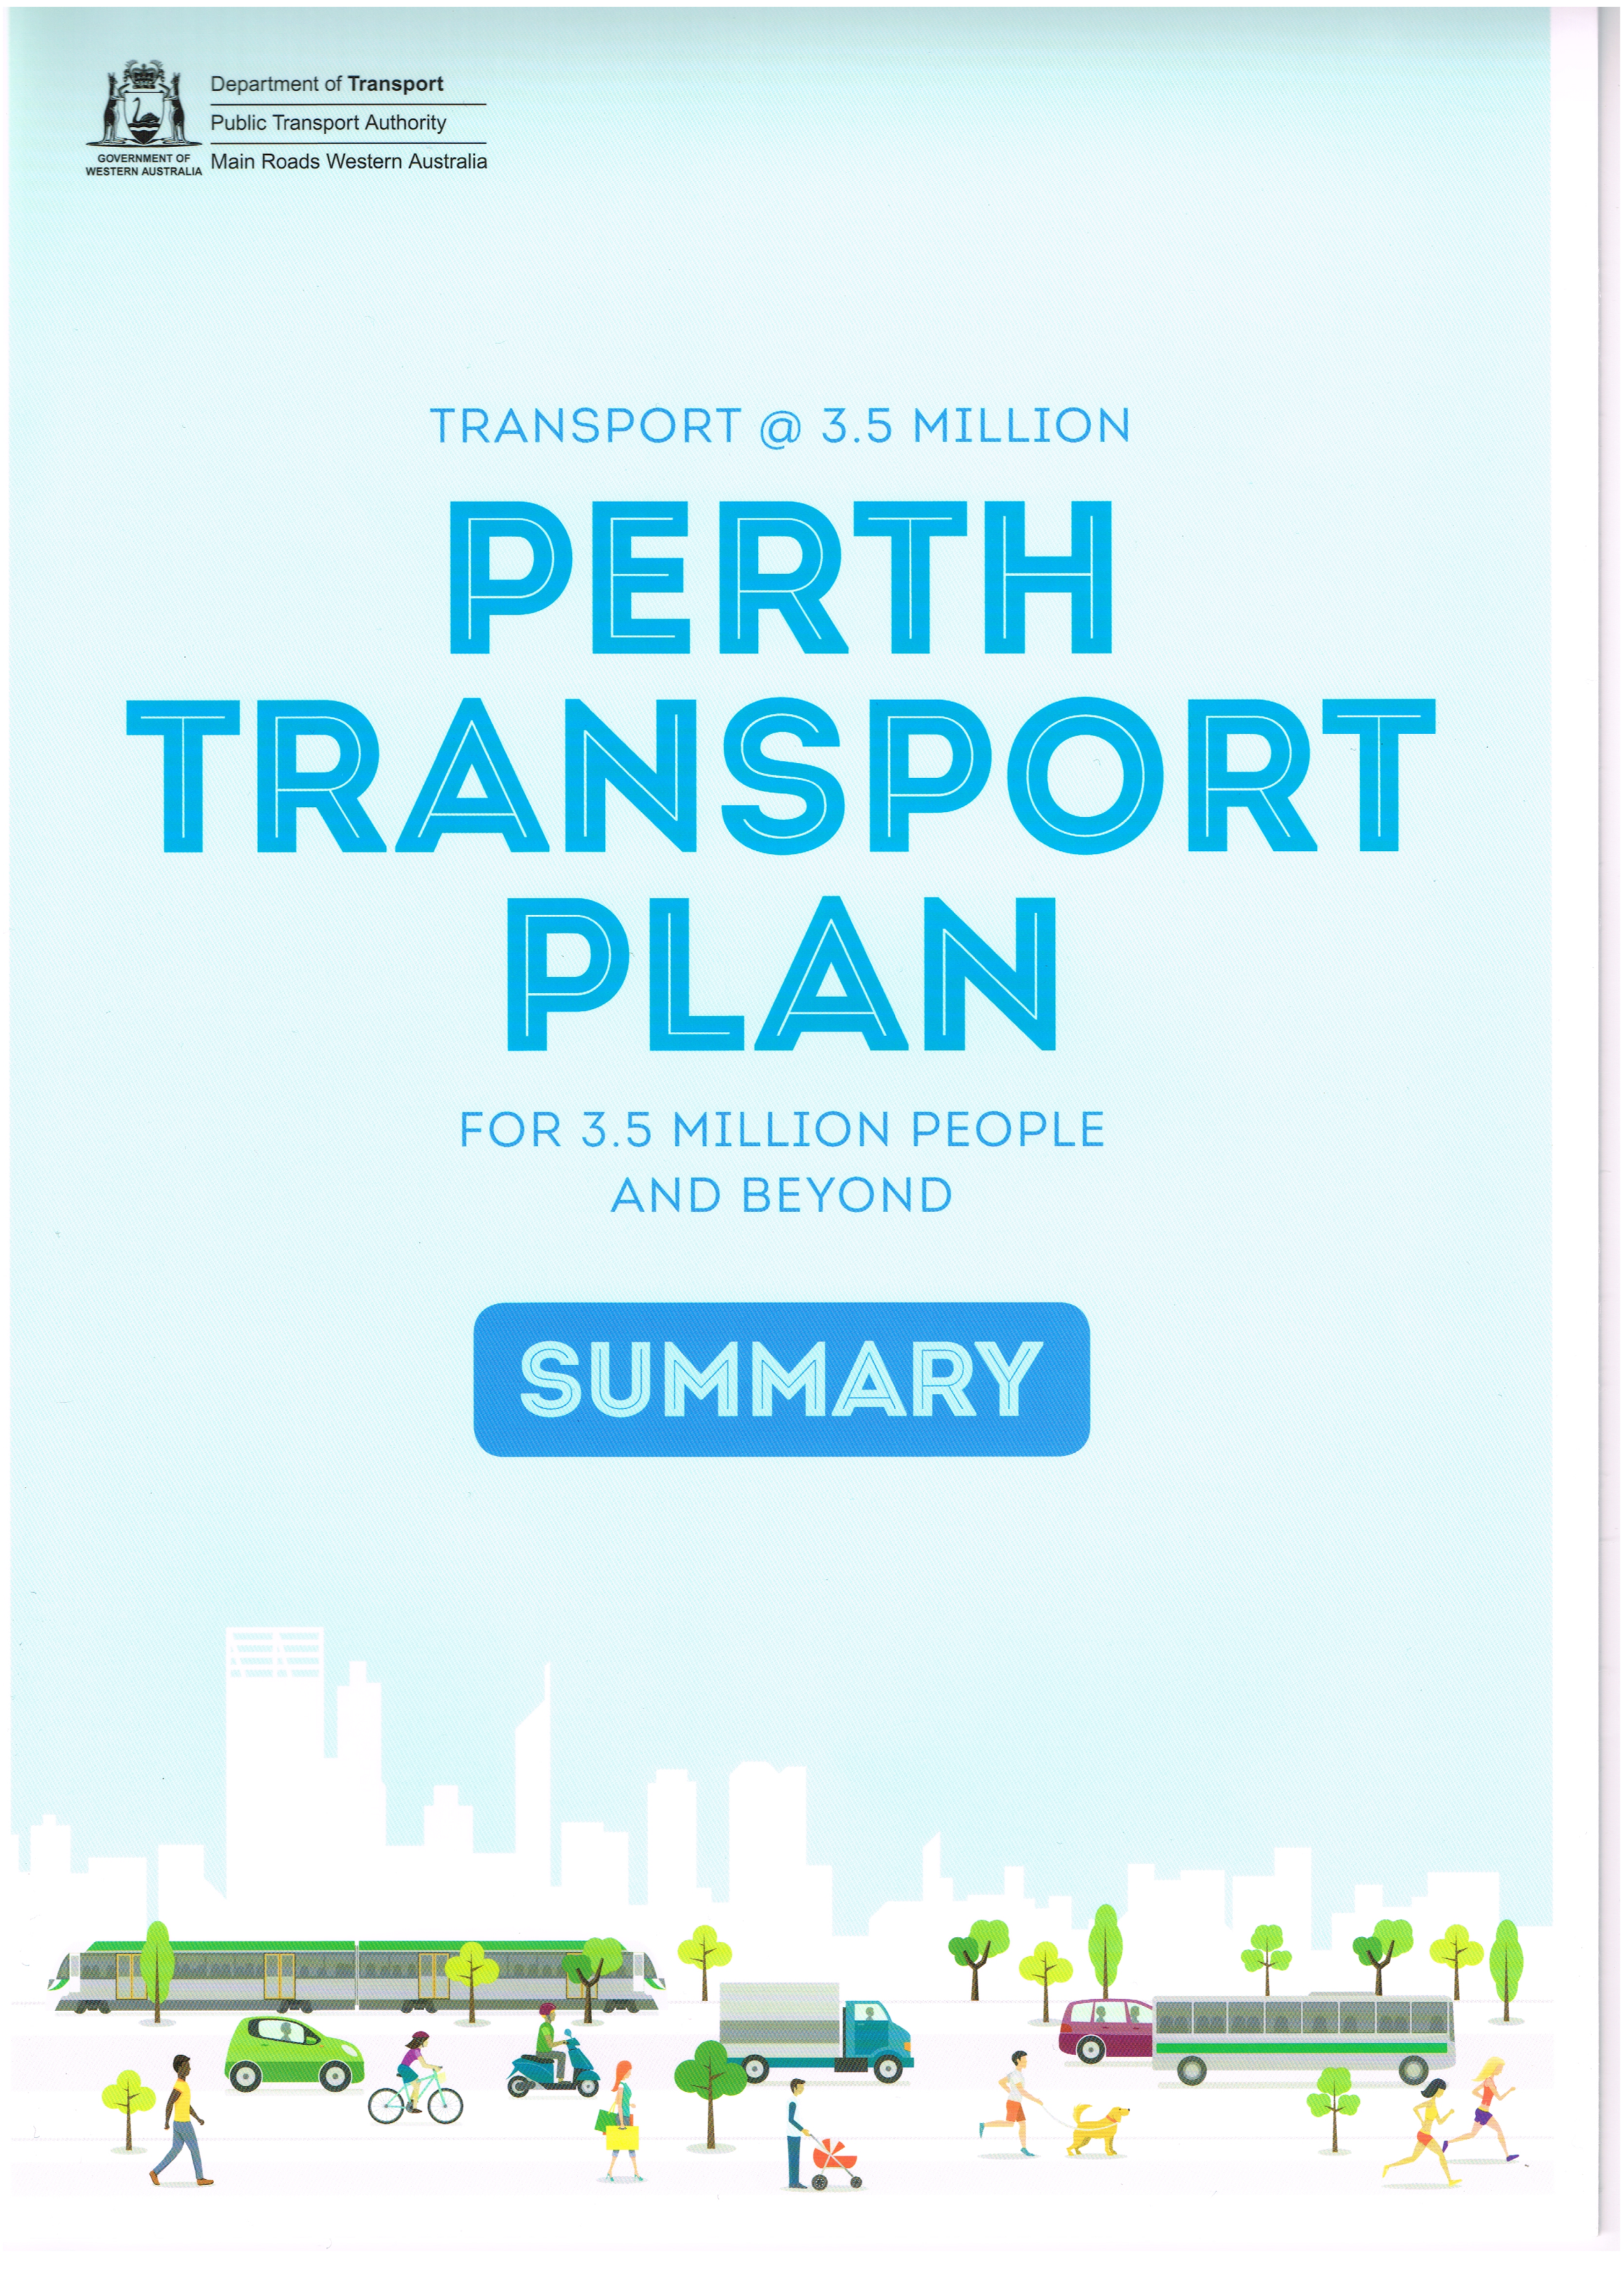 Perth Transport Plan Summary : Transport @ 3.5 million for 3.5 million people and beyond   Department of Transport